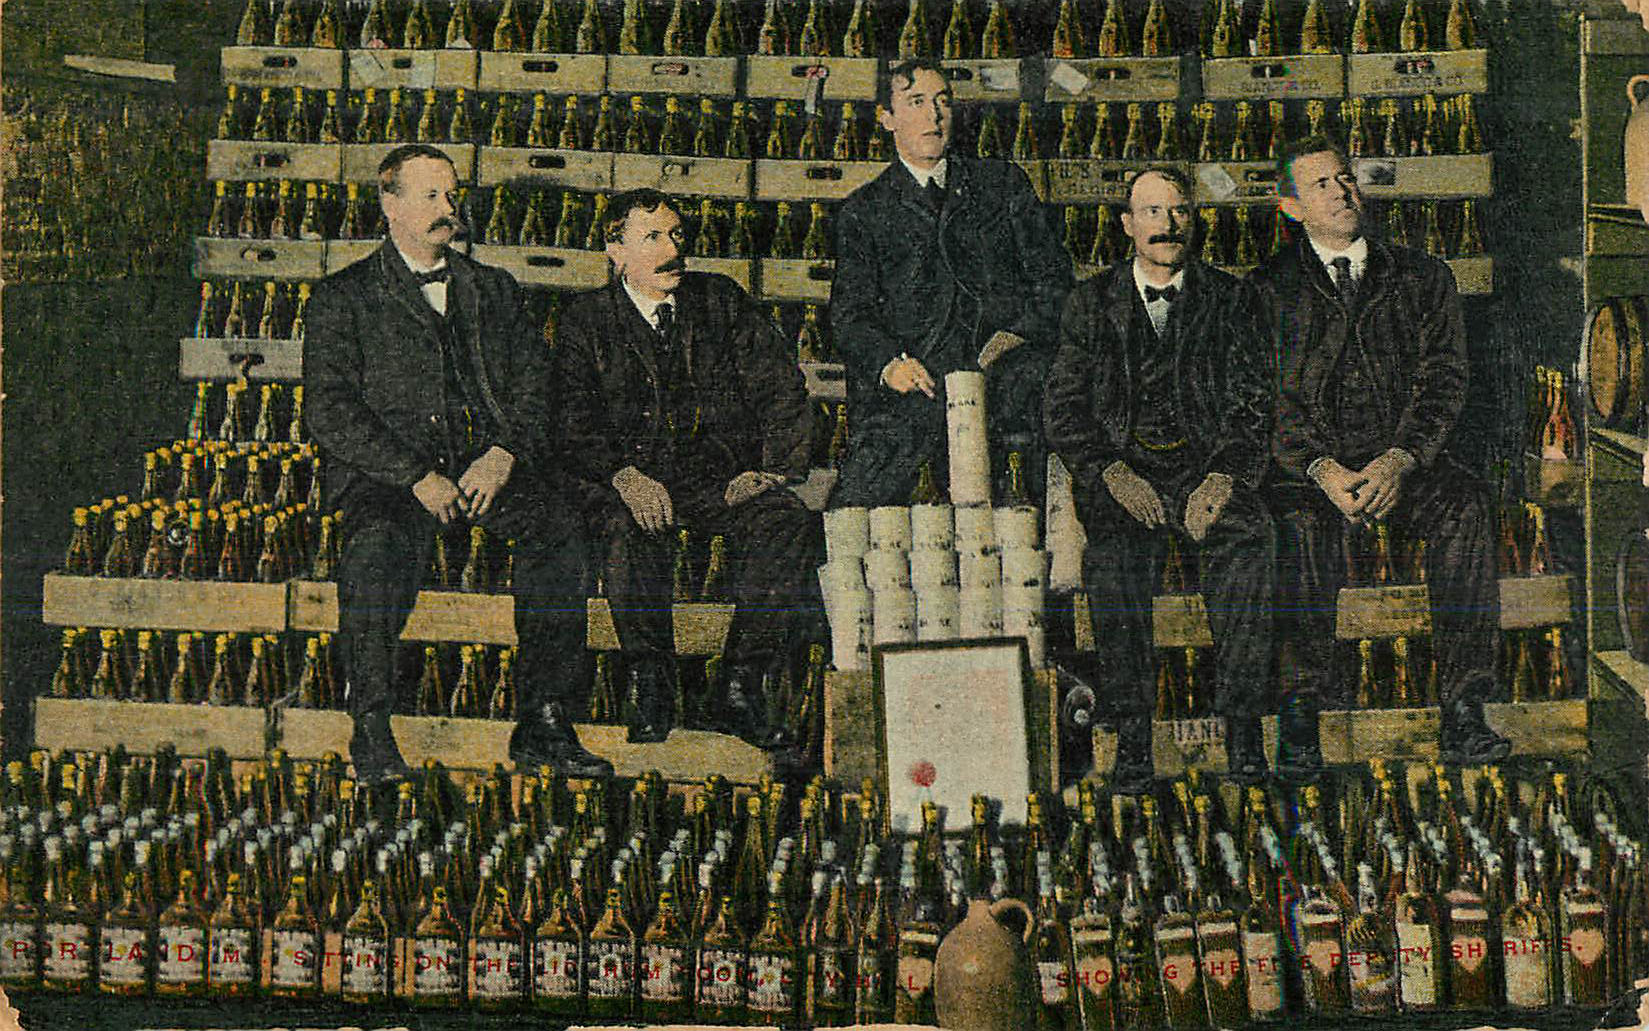 Alcohol Postcard - 5 Men with Cases of Alcohol